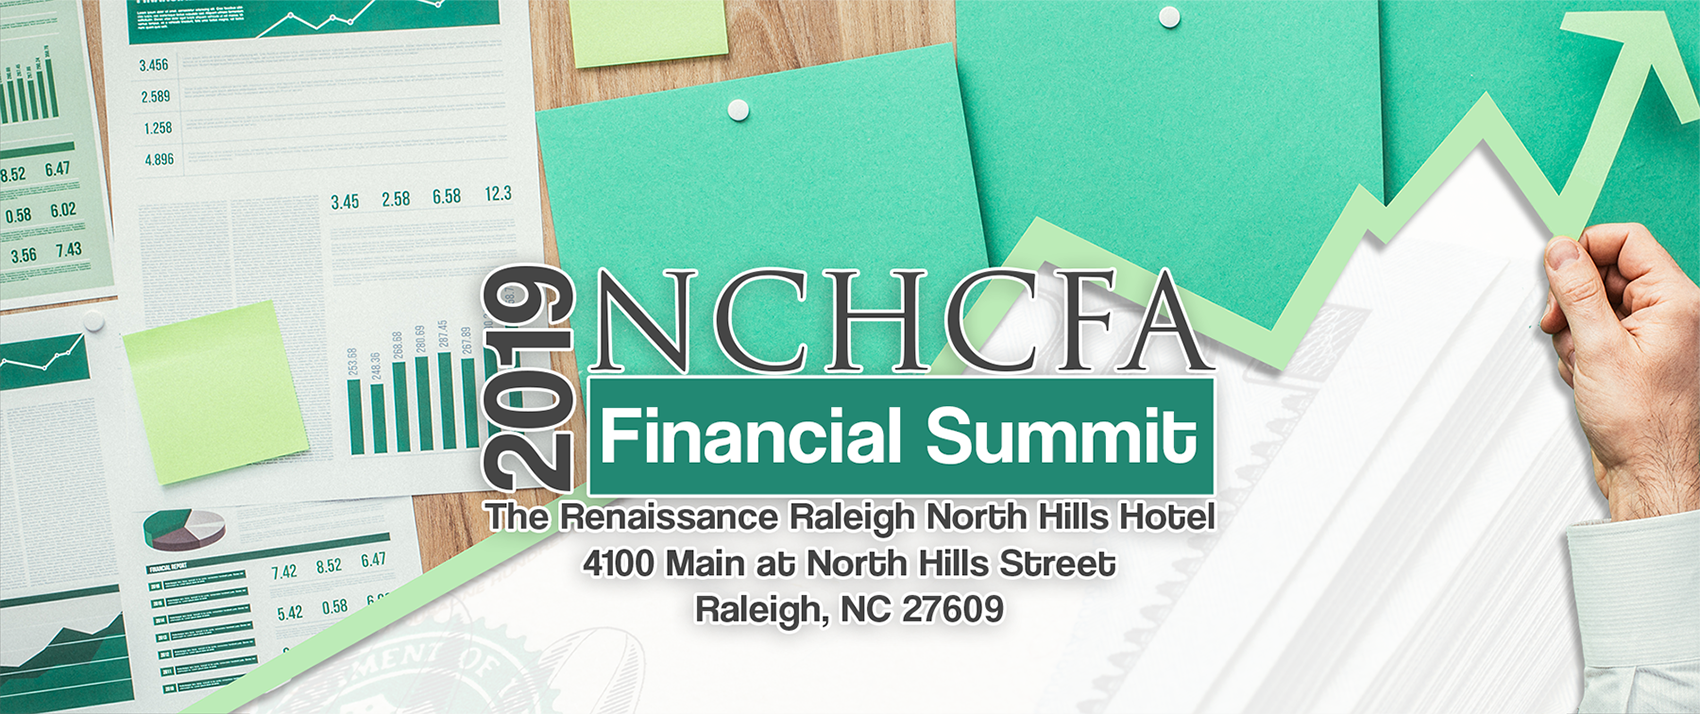 2019 NCHCFA Financial Summit